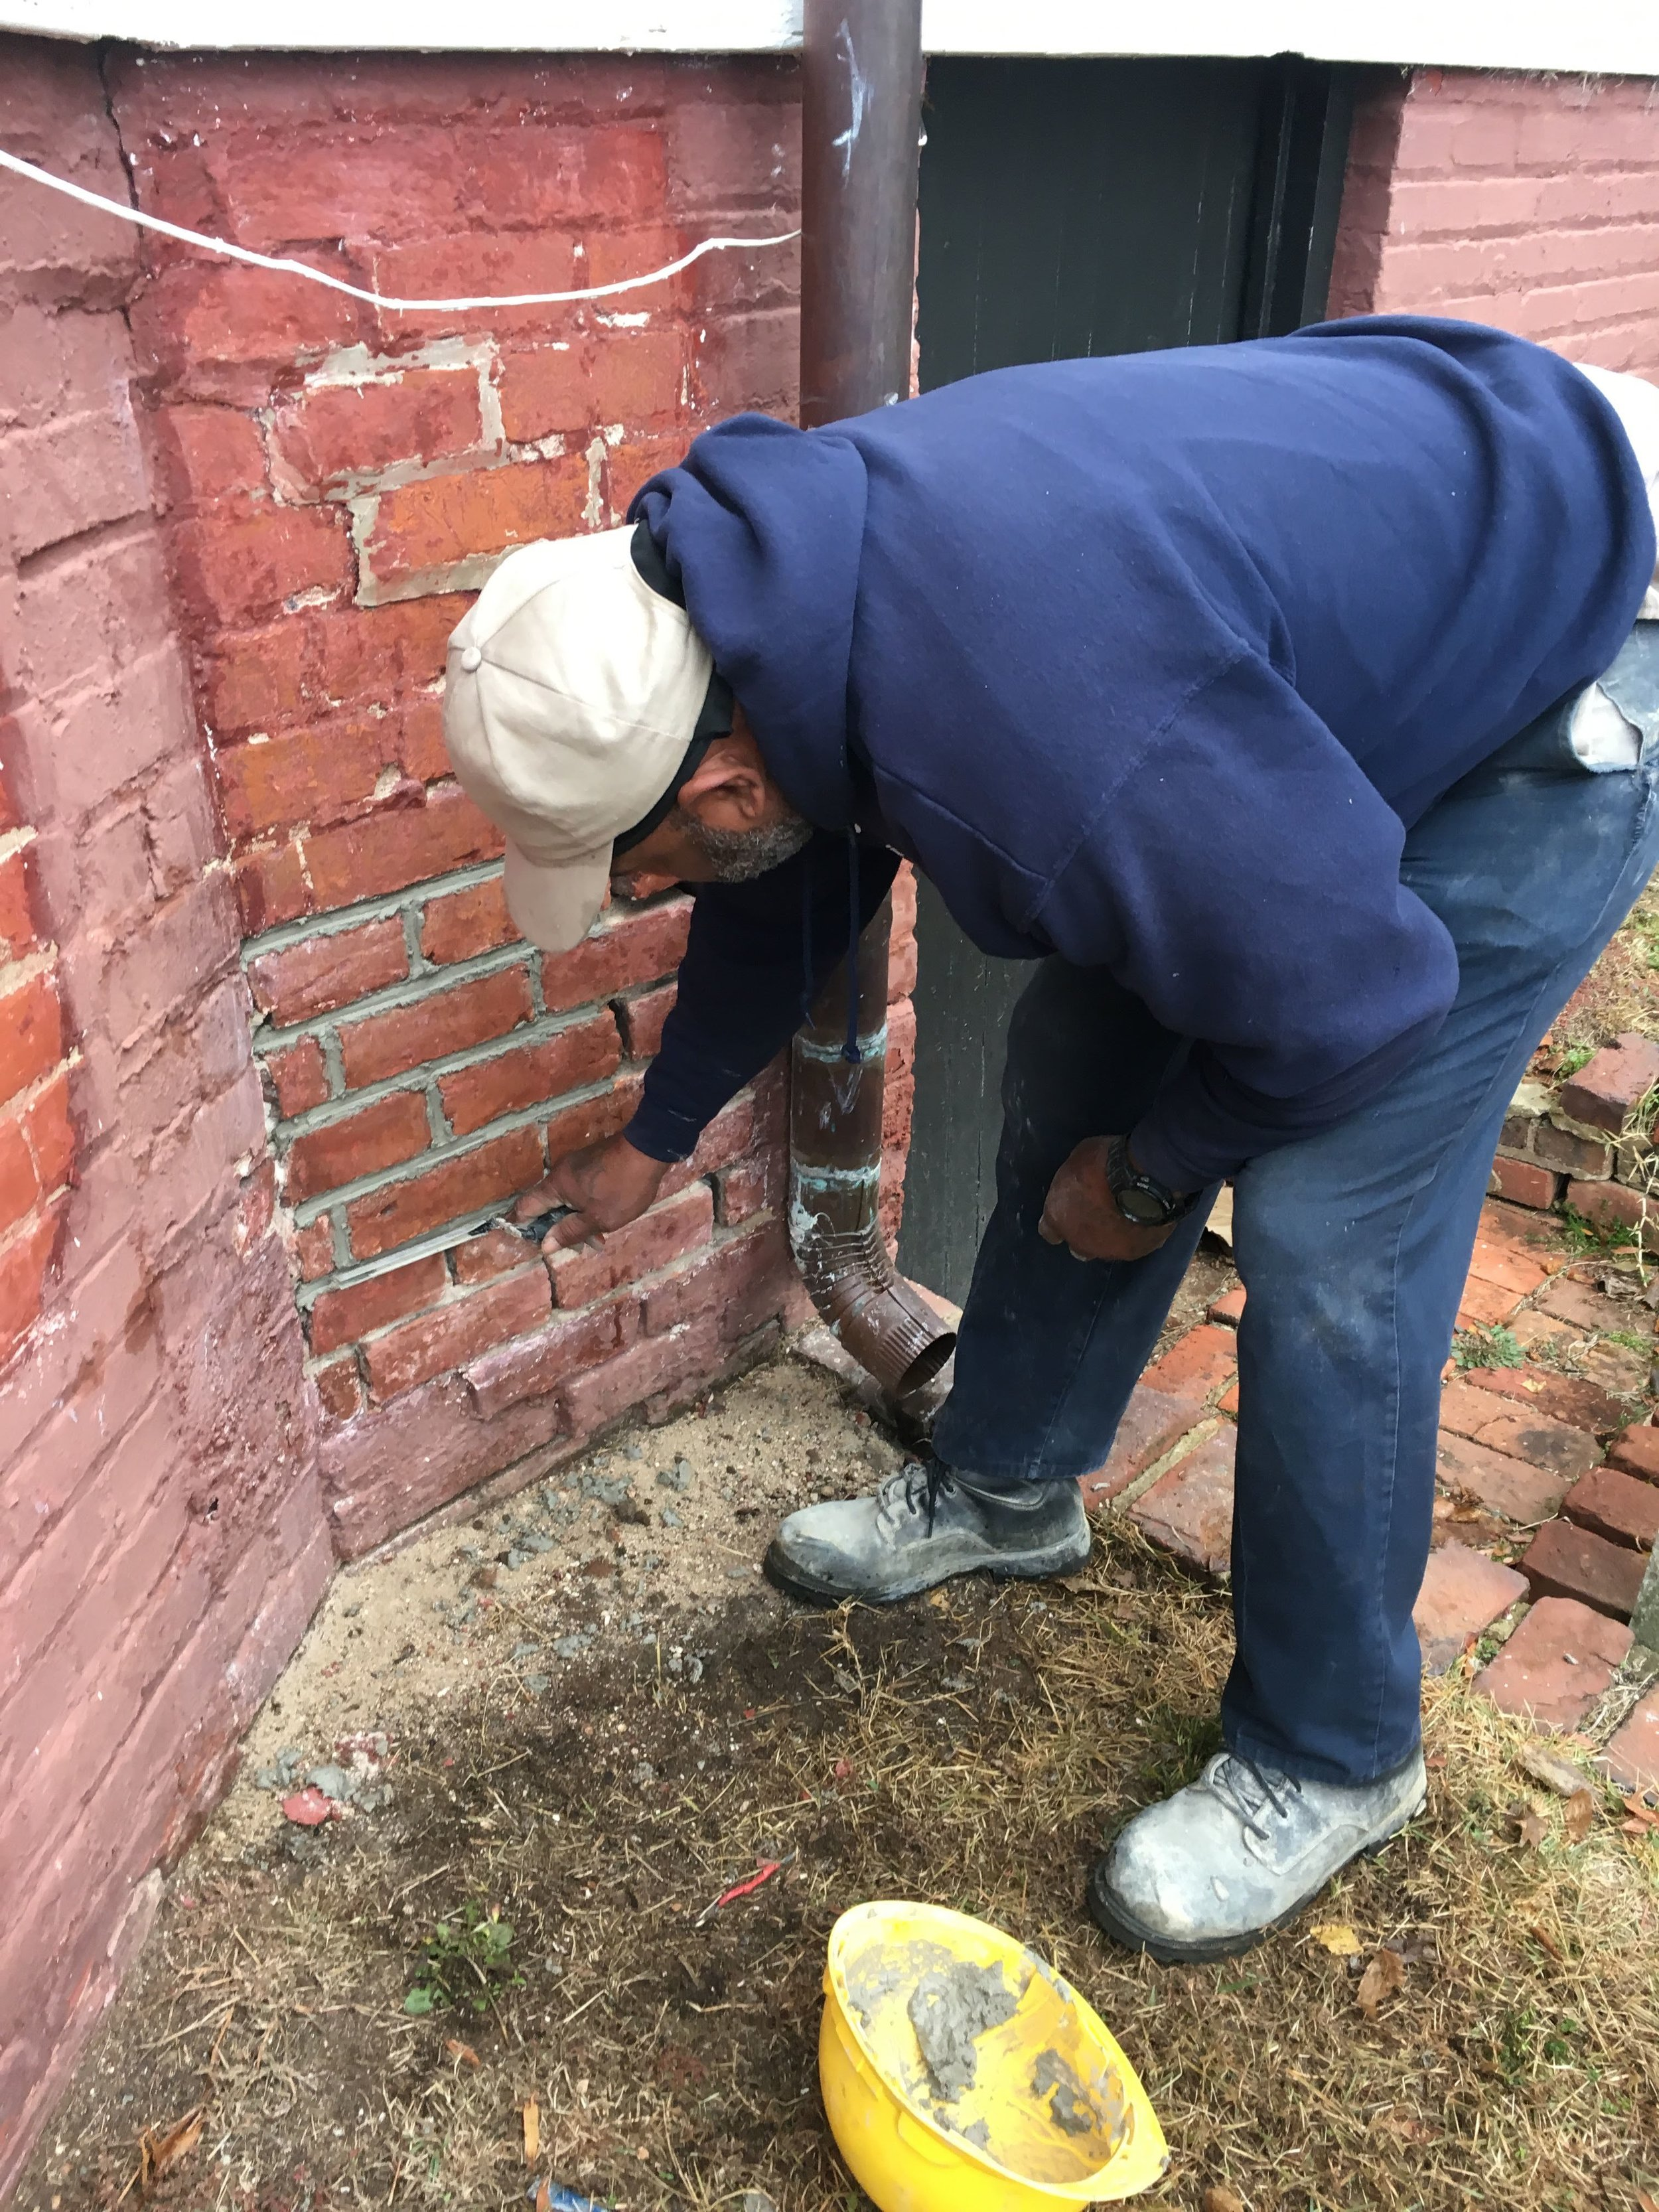 The red paint must be removed and the brick foundation repaired and repointed.